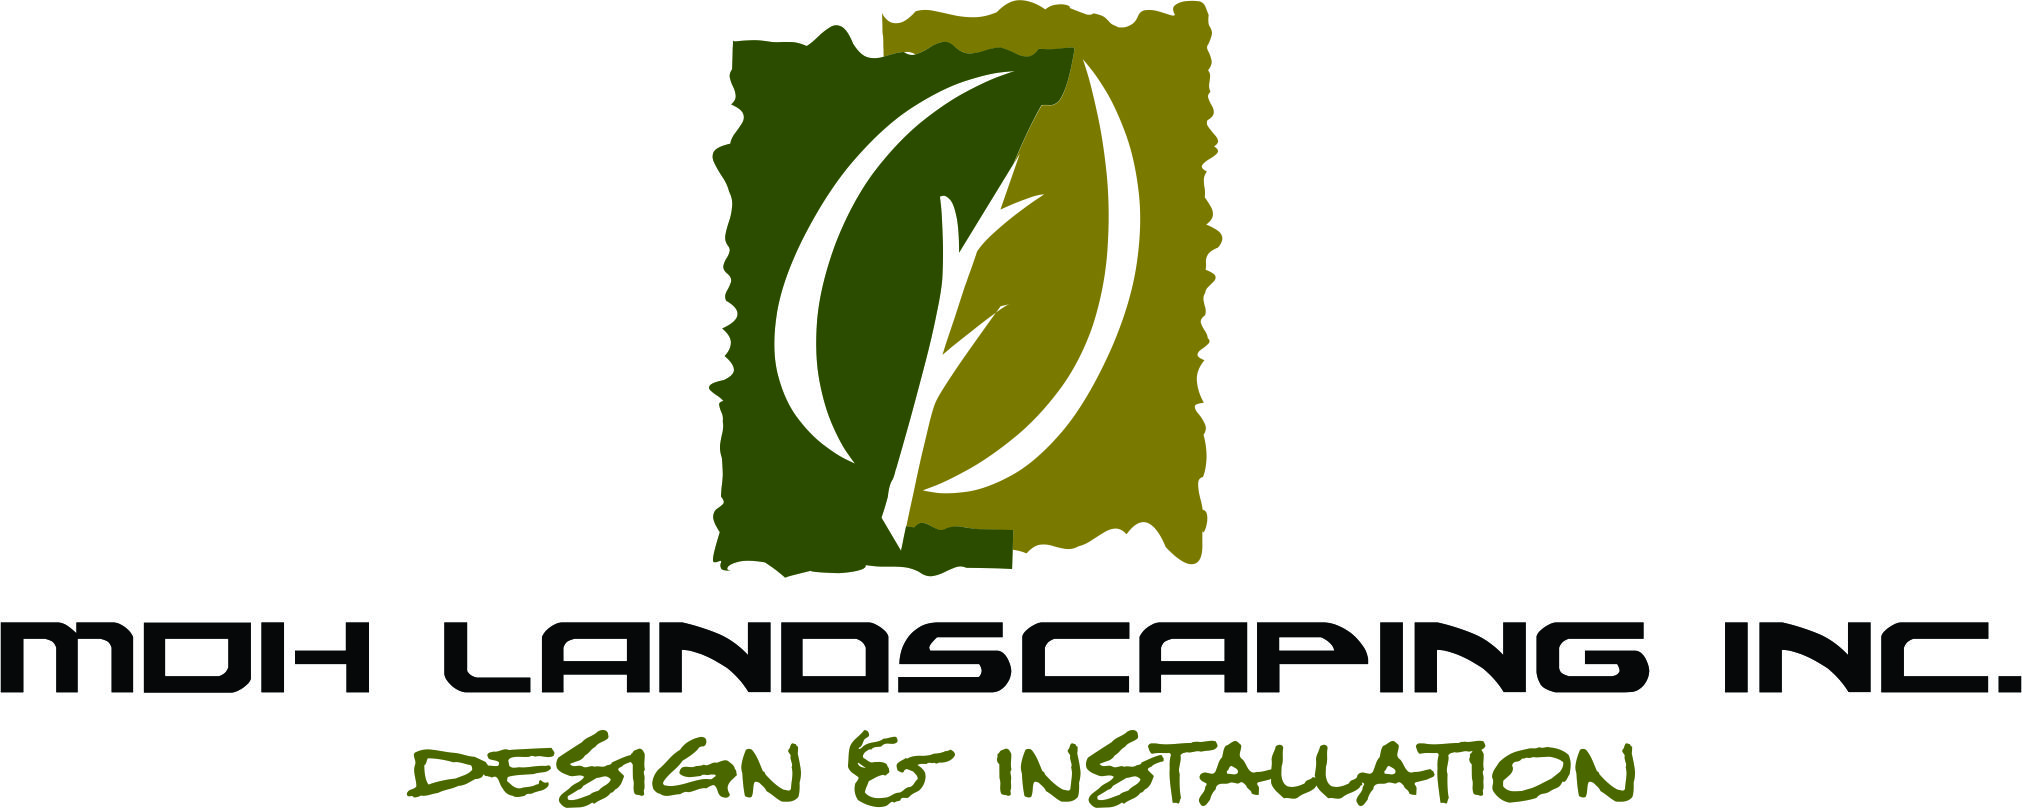 About | MDH LANDSCAPING INC.